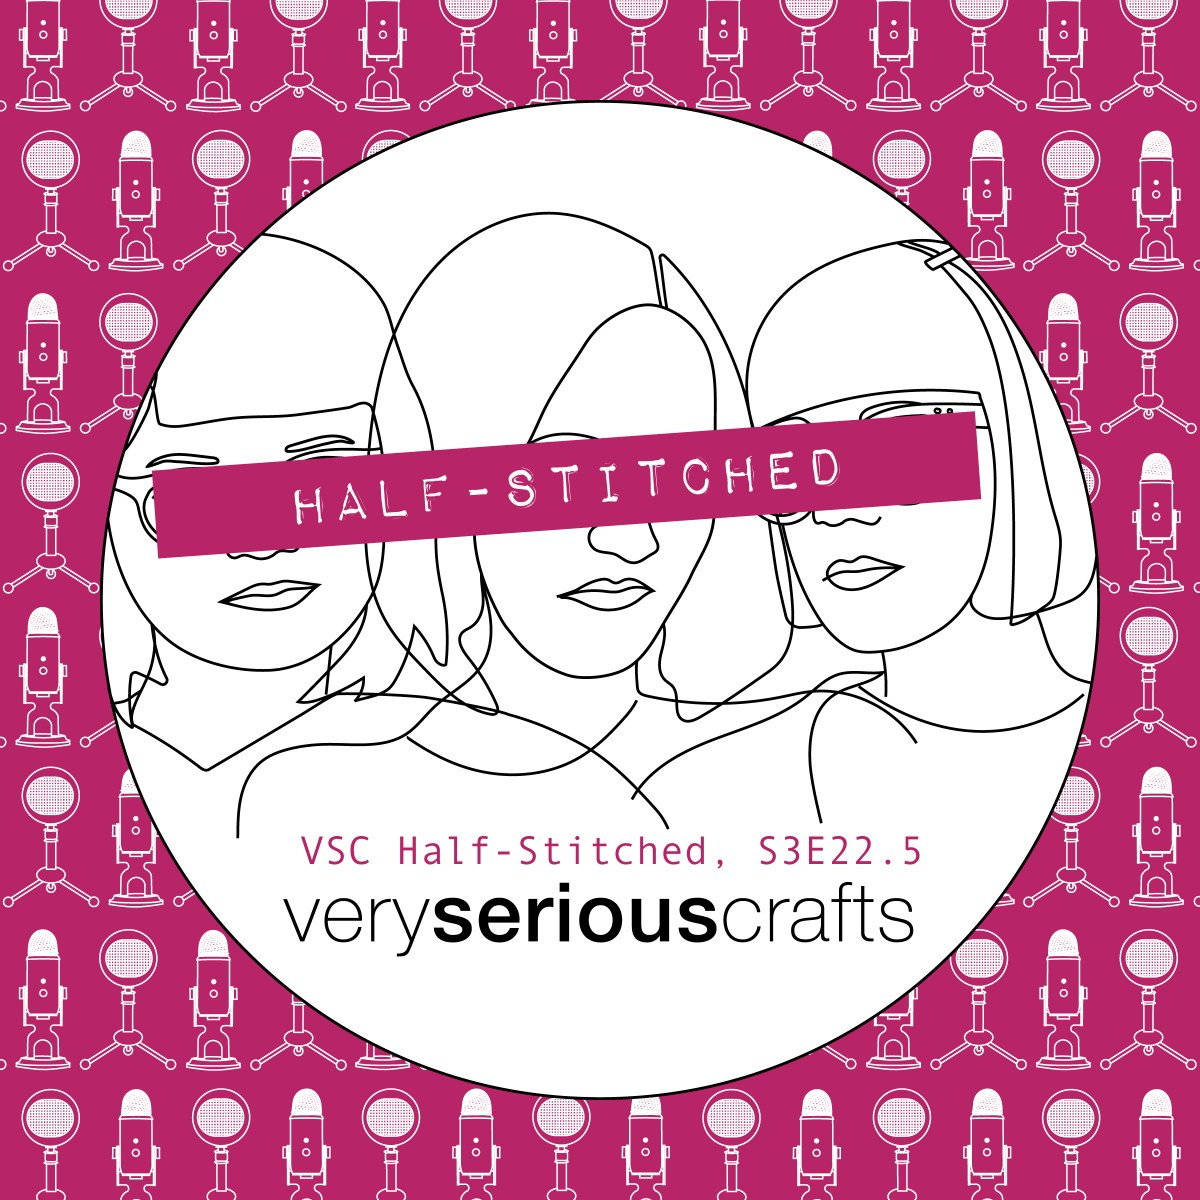 The Very Serious Crafts Podcast, Patreon Half-Stitched Episode S3E22.5